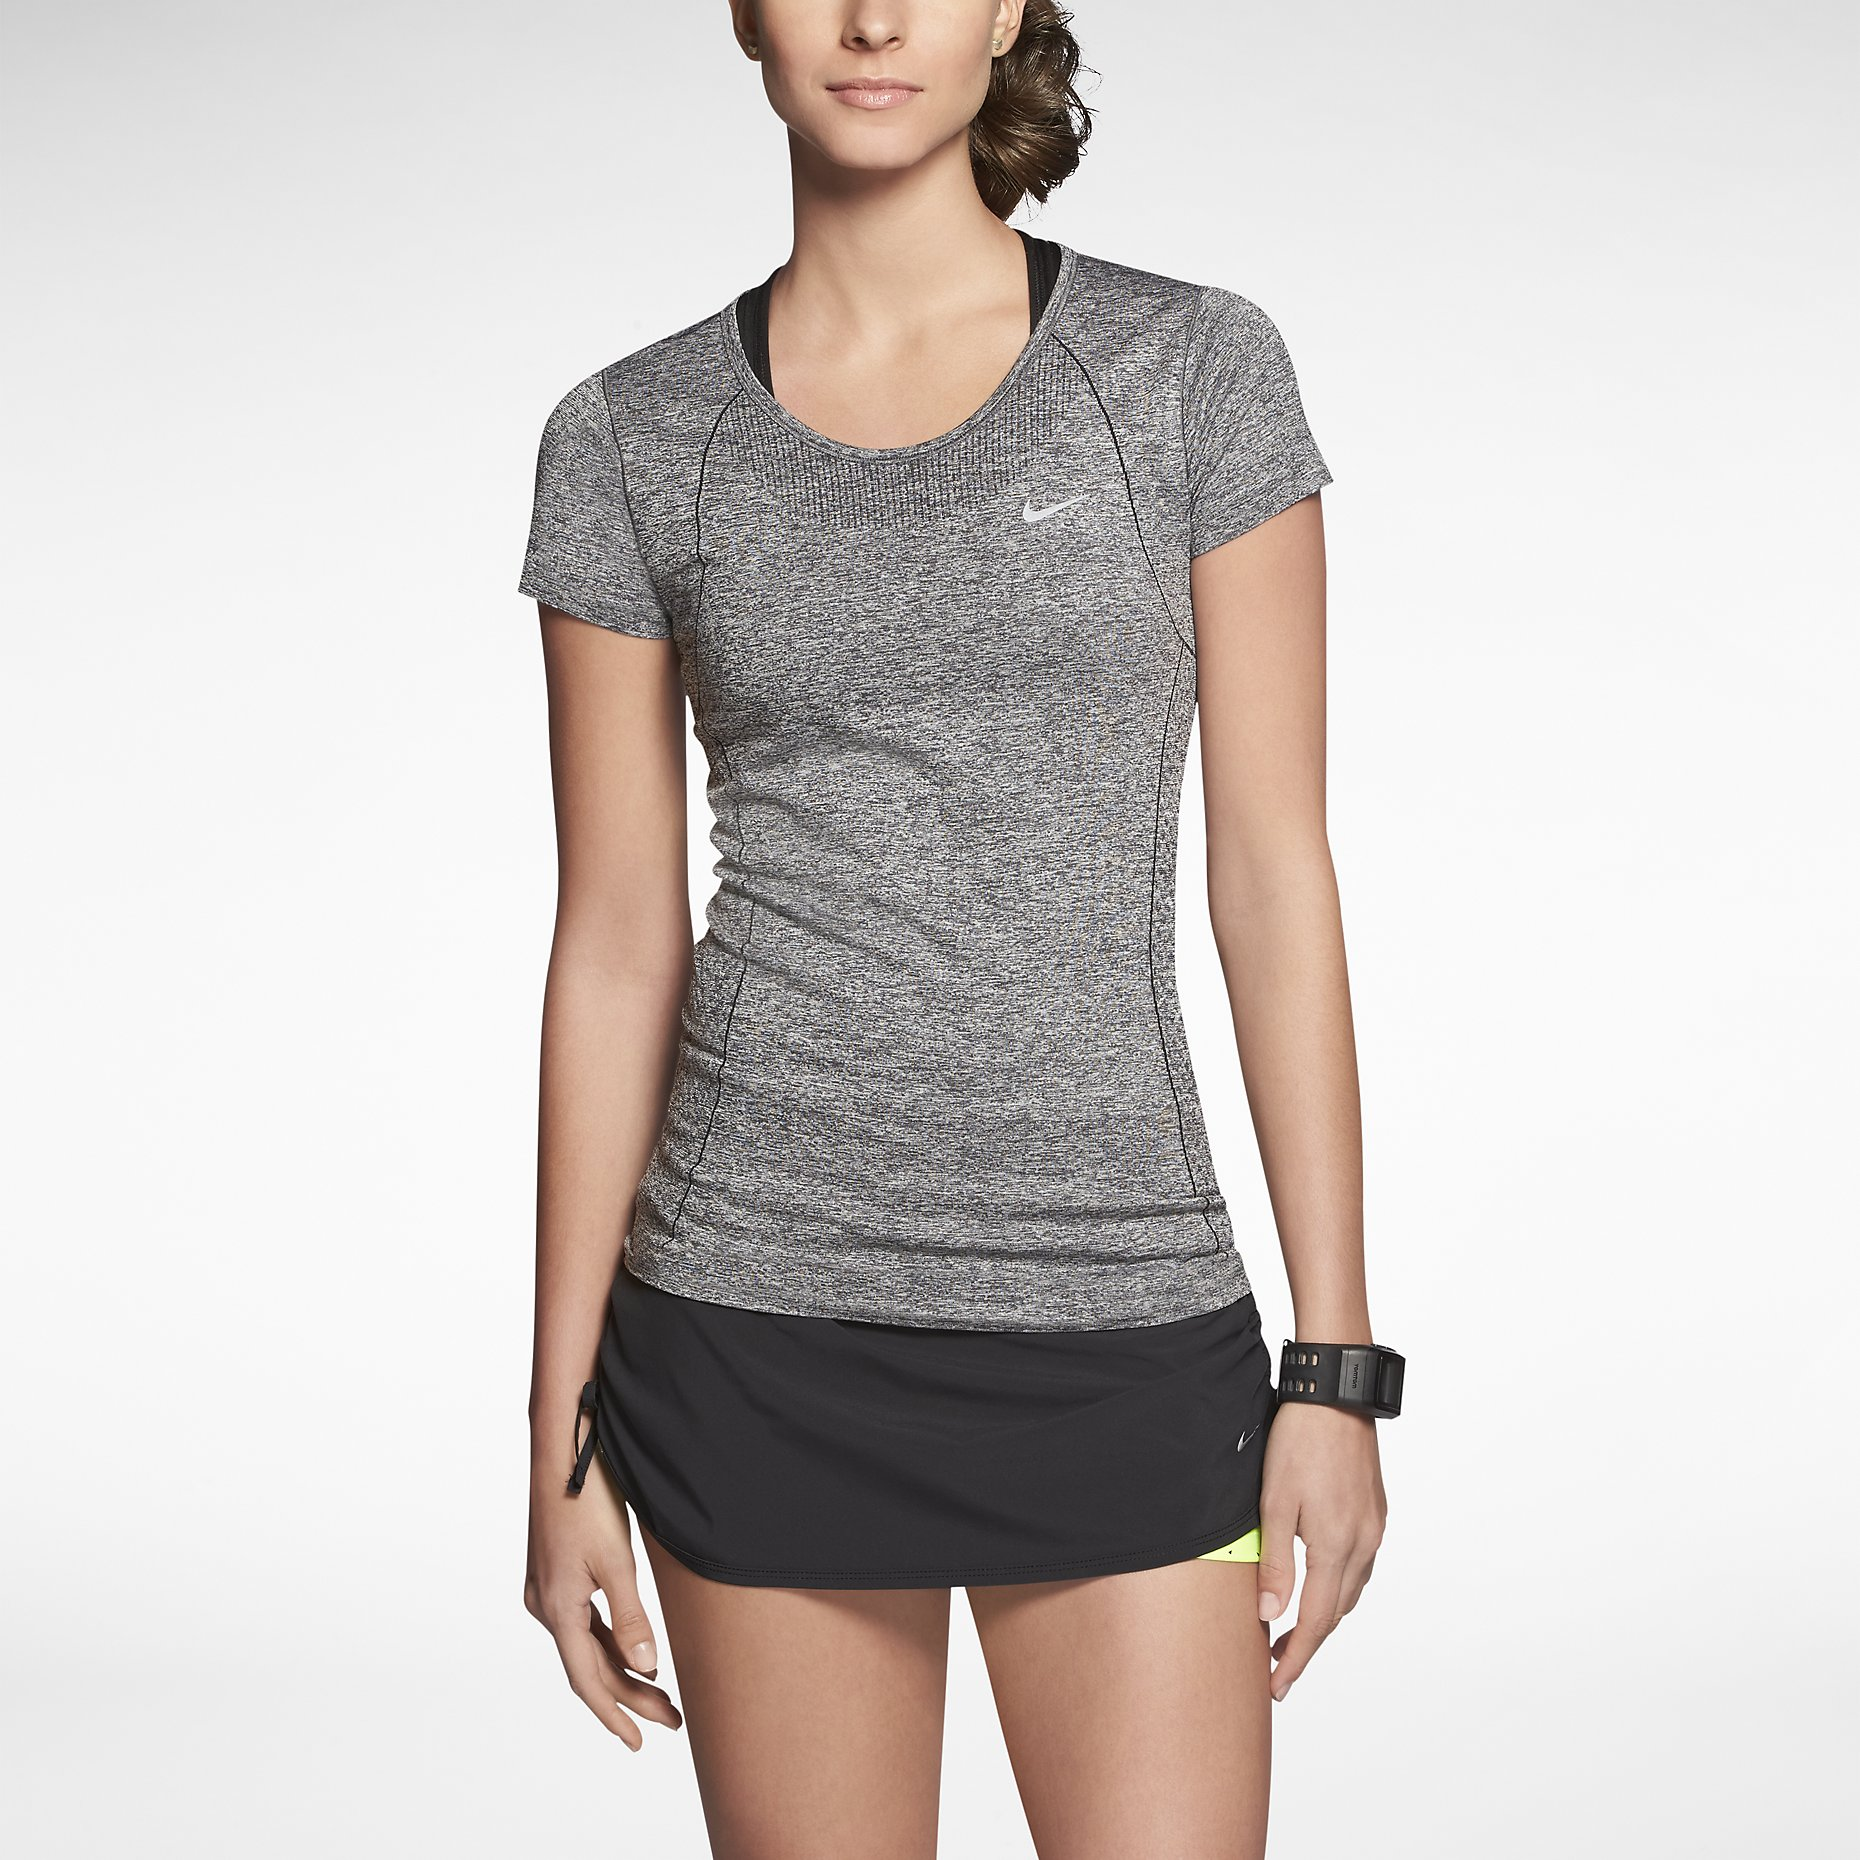 31ea4a52 NIKE T-Shirt DRI-FIT KNIT Femme | Alltricks.com